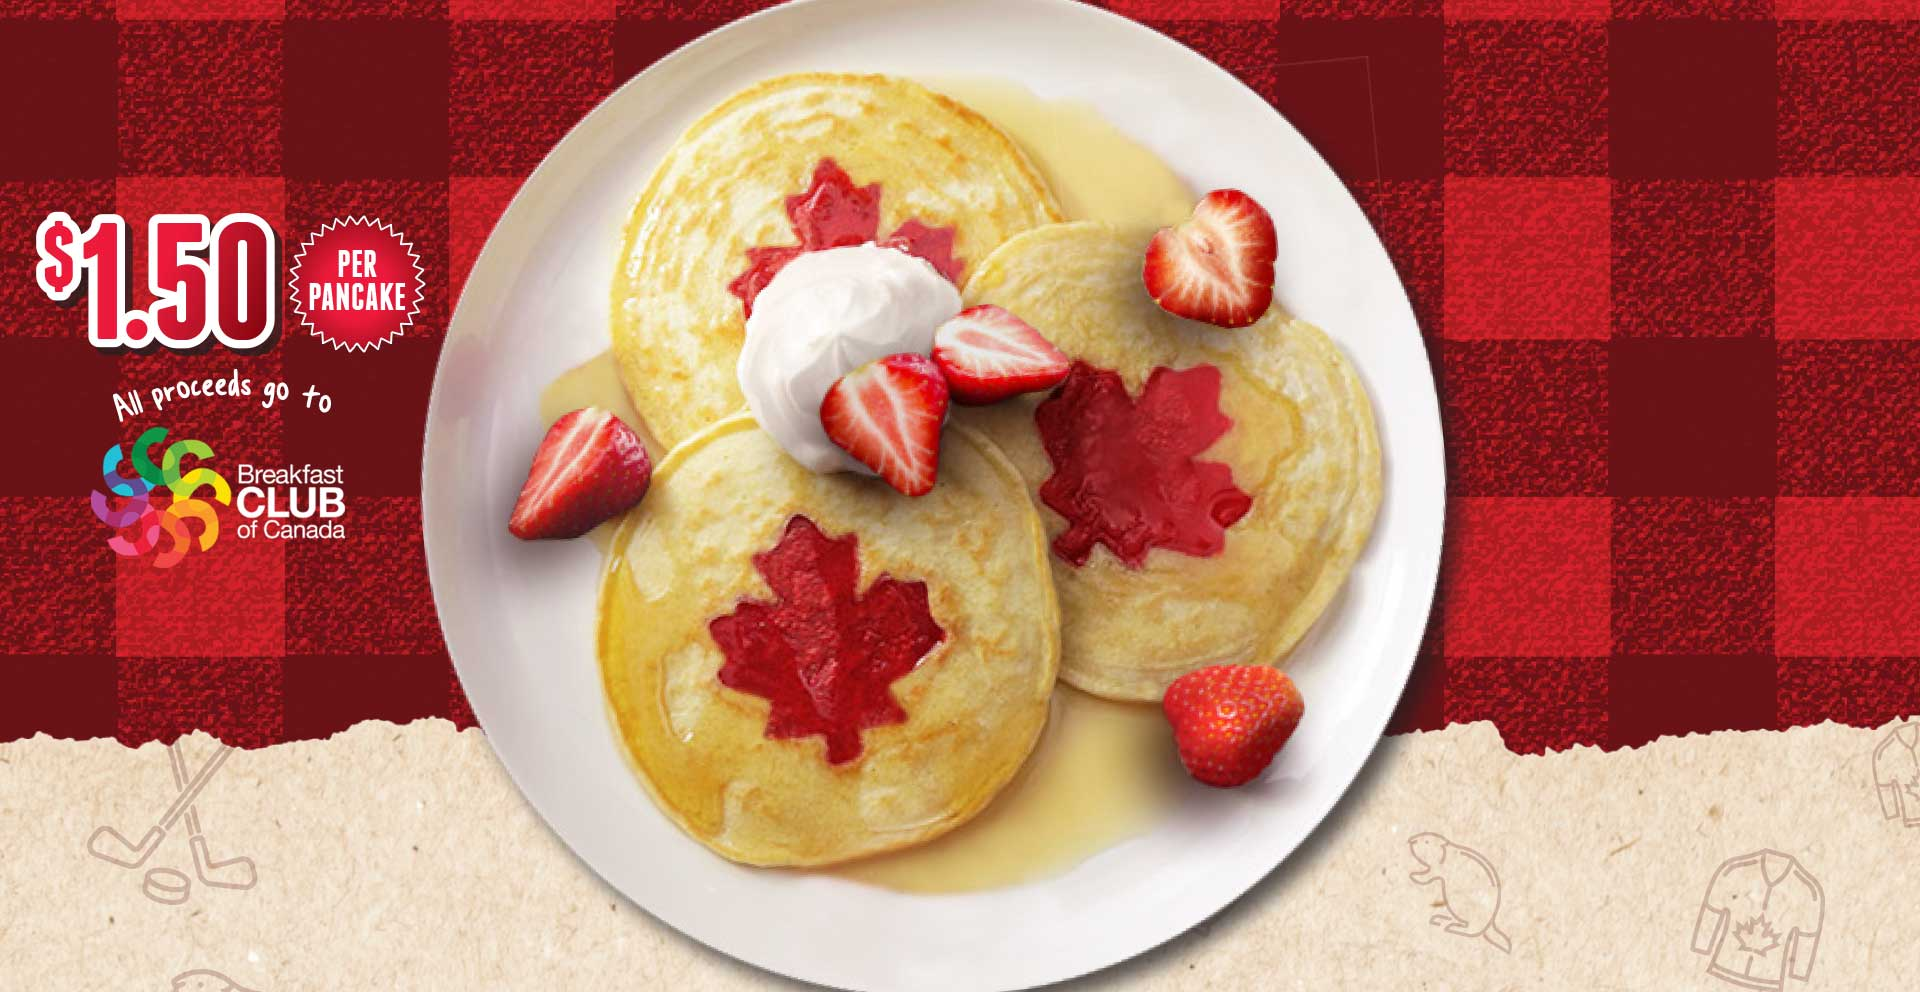 Celebrate Canada Day with Ricky's! From June 24 to July 1 until 11am get an O Canada Pancake and help Breakfast Club of Canada.